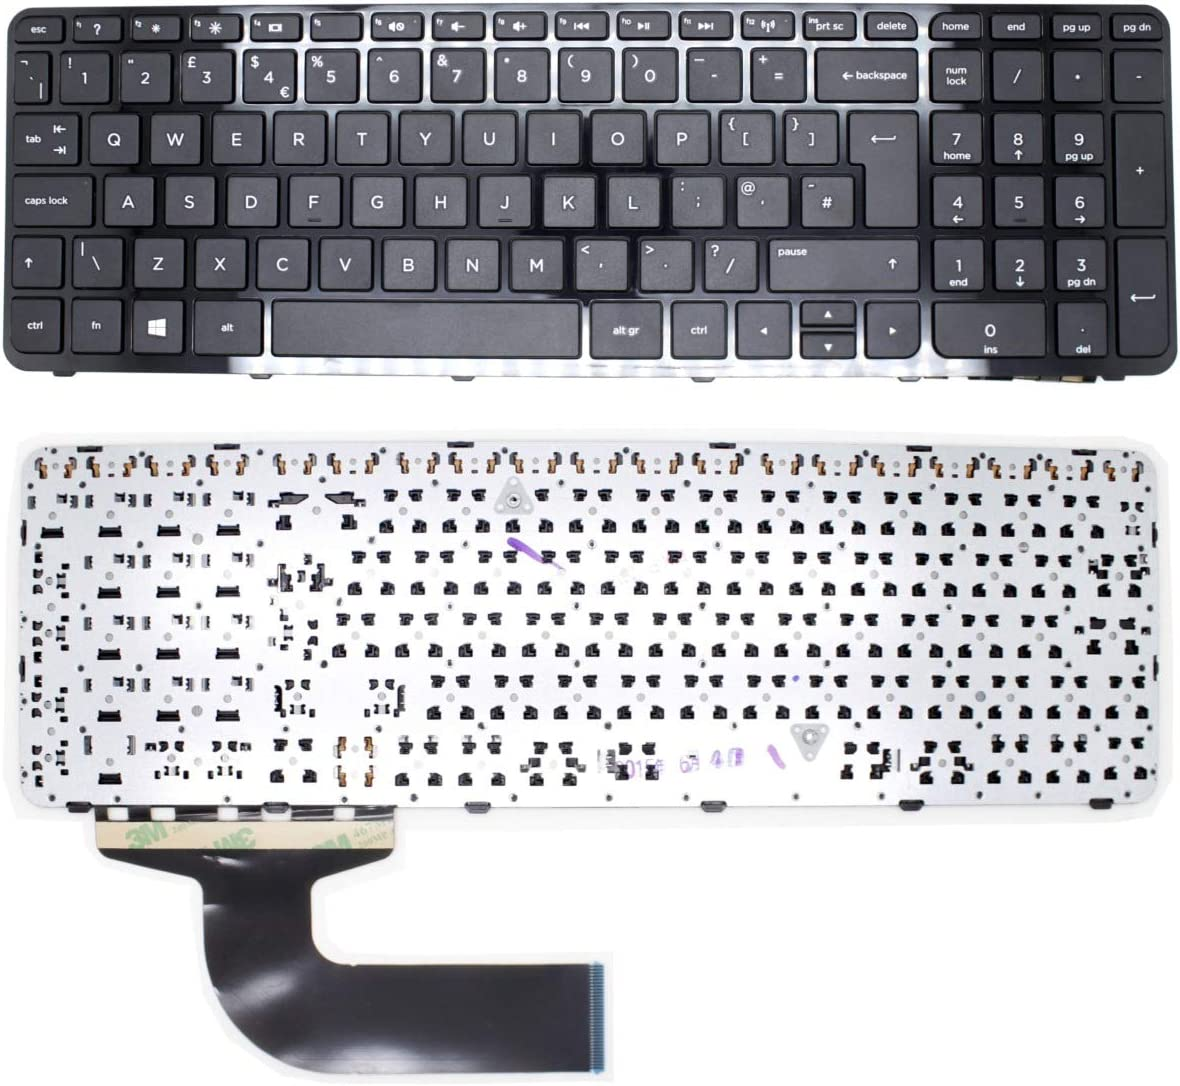 Genuine New US black keyboard for HP 250 G2 250 G3 255 G2 255 G3 256 G2 256 G3